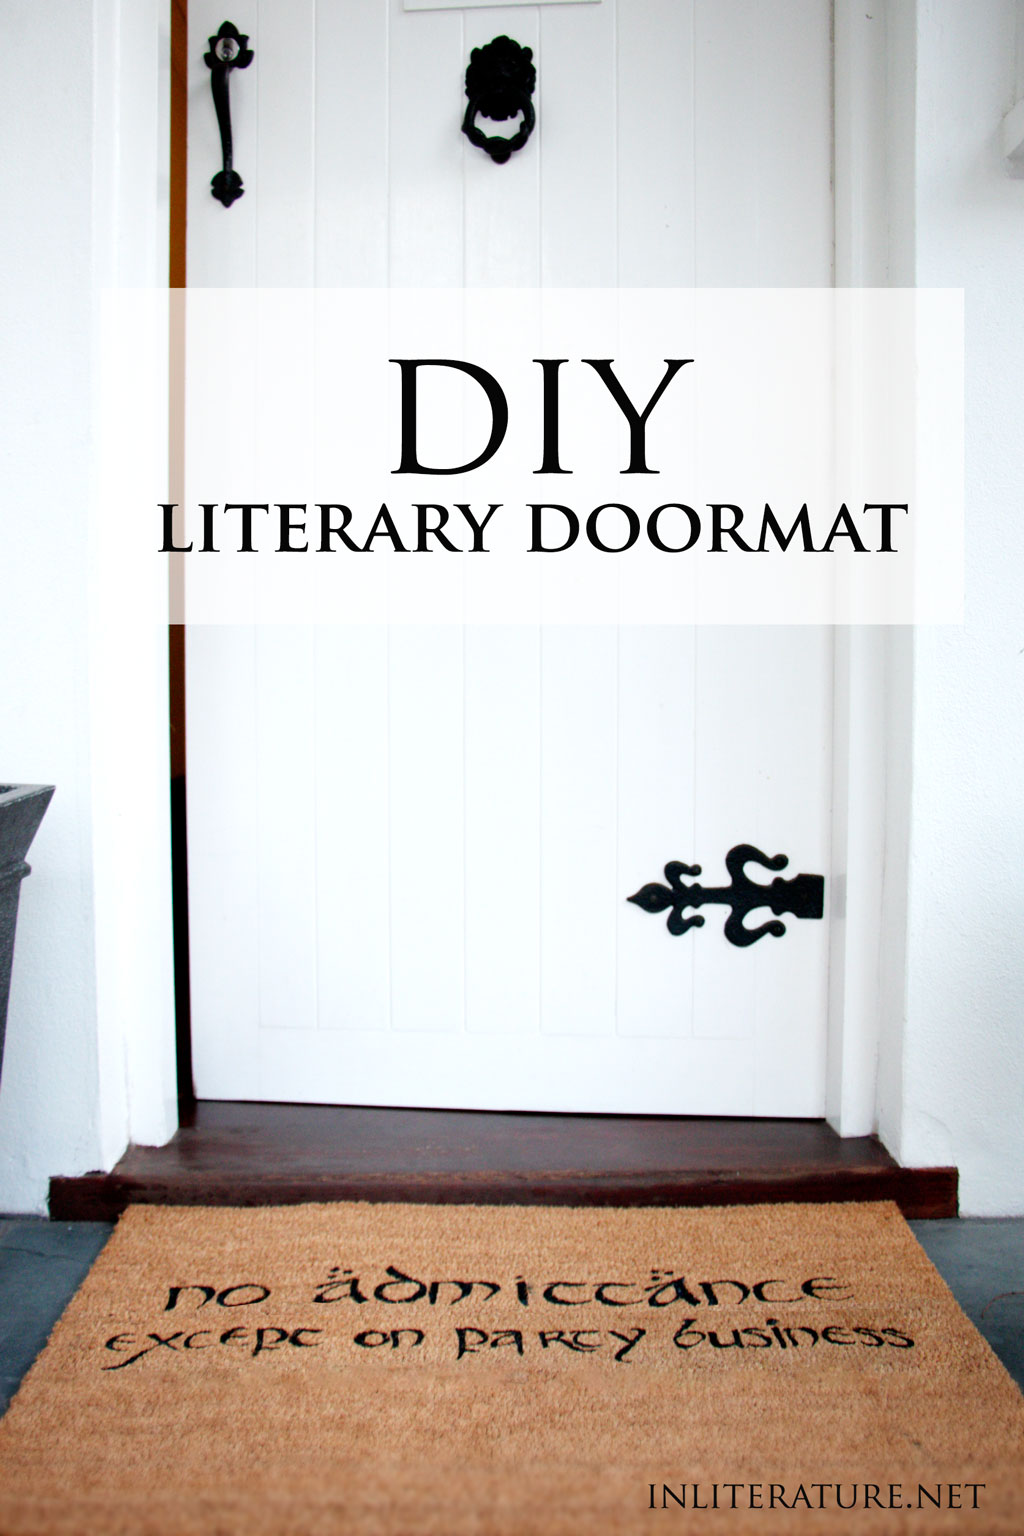 Our home reflects who we are, so it only makes sense to extend our style to our front door. Follow along today with this easy DIY literary doormat tutorial. Included is a template for a Hobbit themed doormat, however it's easy to design your own.